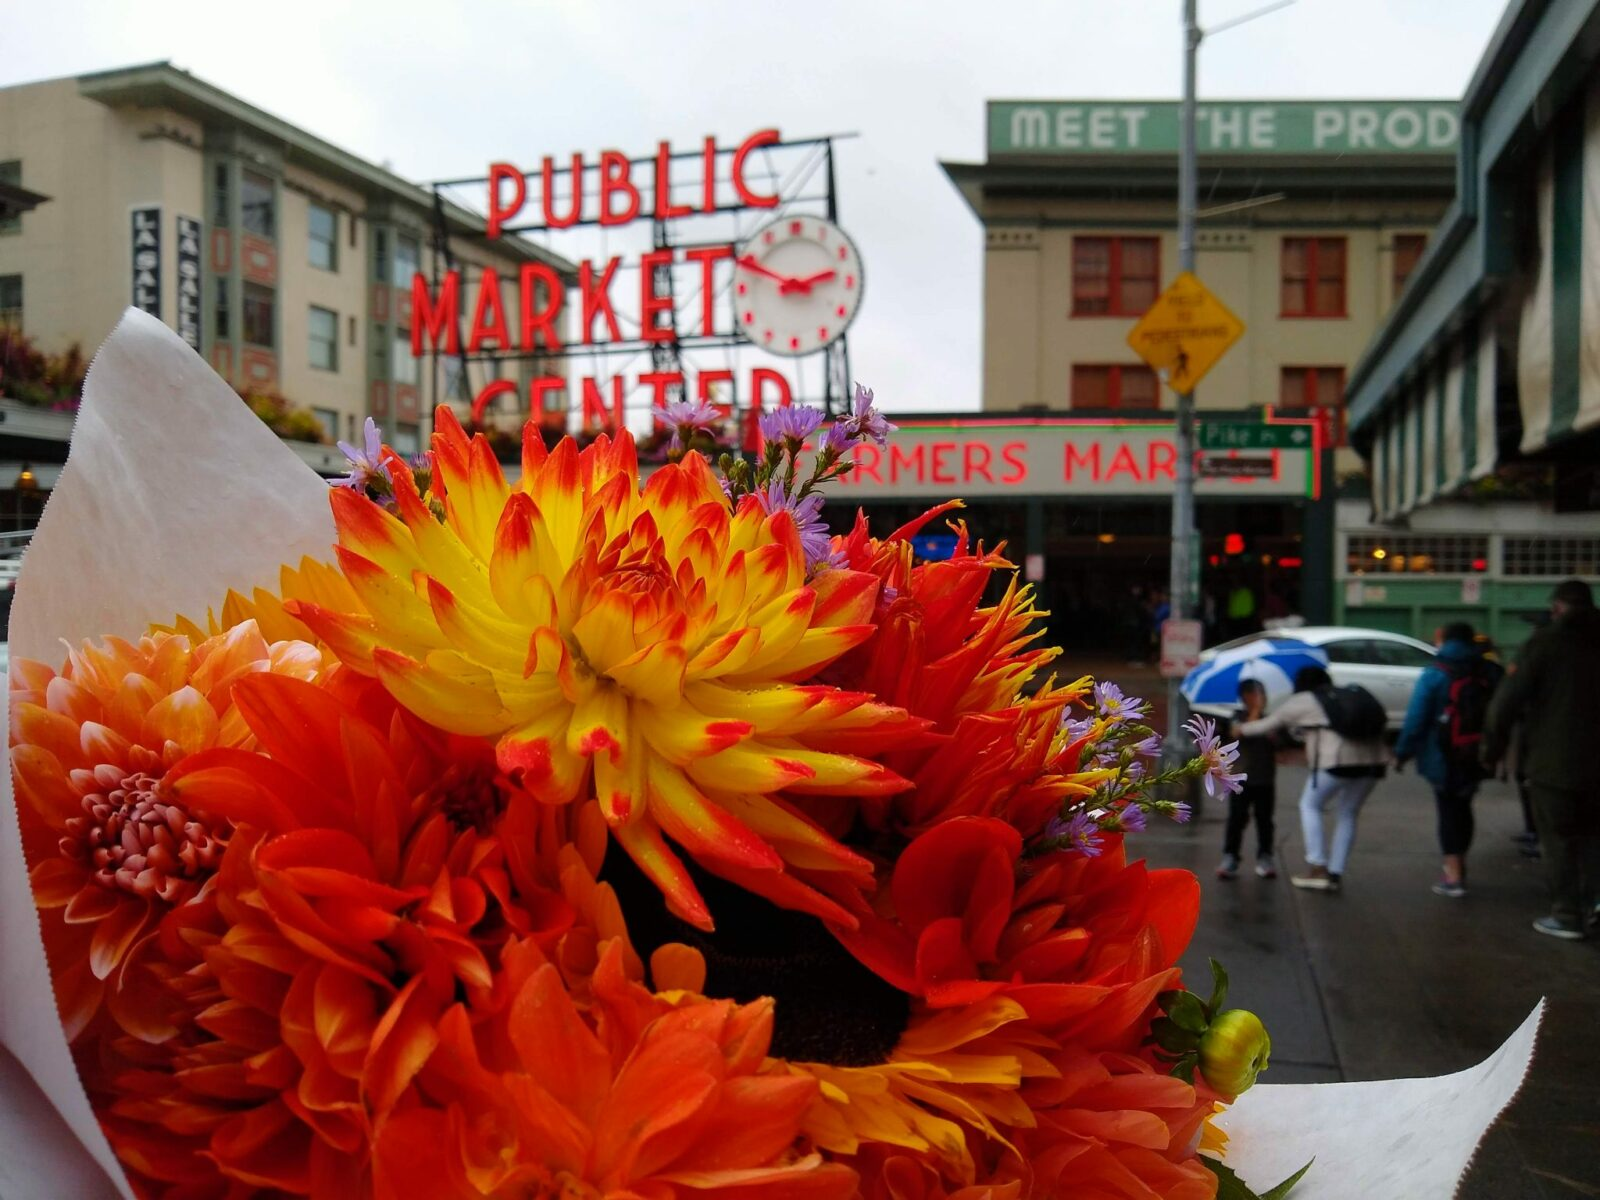 "A bright bouquet of orange, red and yellow flowers is held up in the foreground. In the background is Seattle's Pike Place Market, with a large red neon sign saying ""Public Market Center"" with a red and white clock. There are other buildings and people in the background, slightly out of focus"